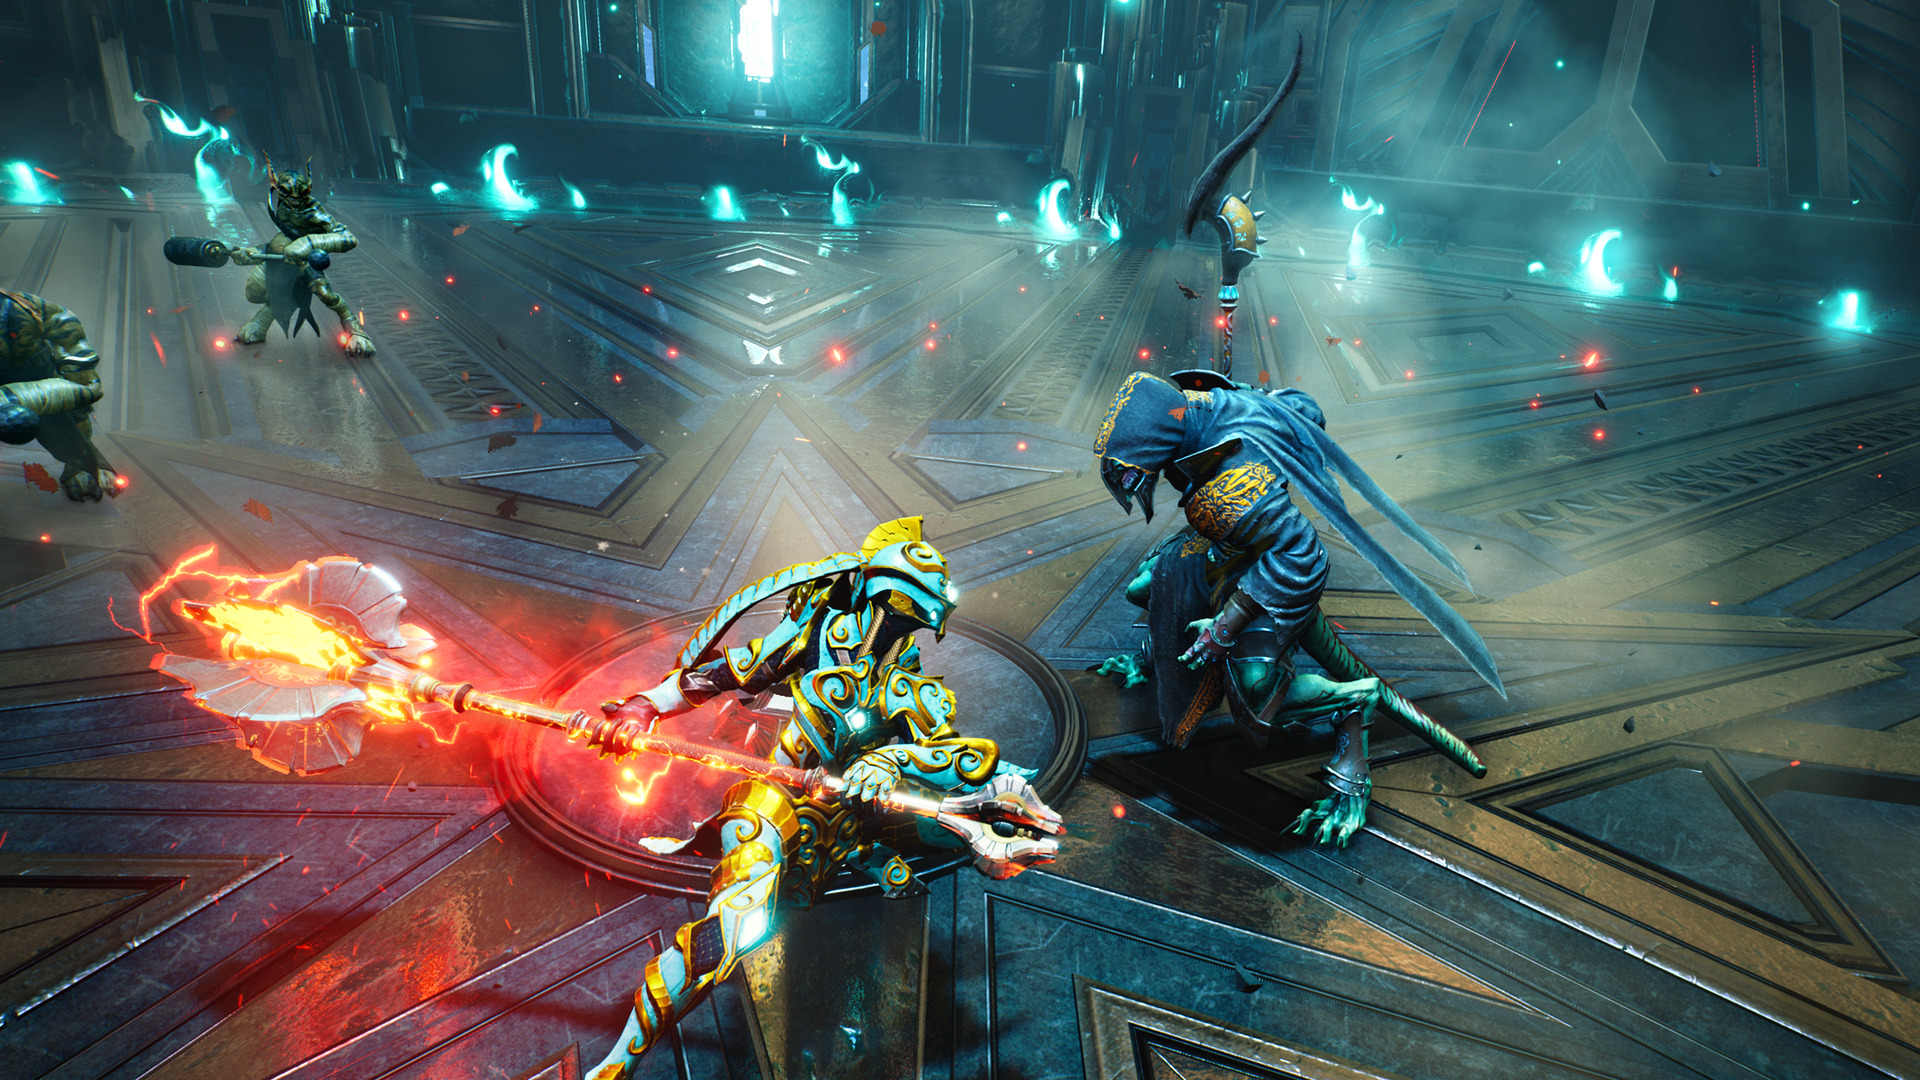 Godfall might be coming to PS4, and I hope it's a smoother launch screenshot